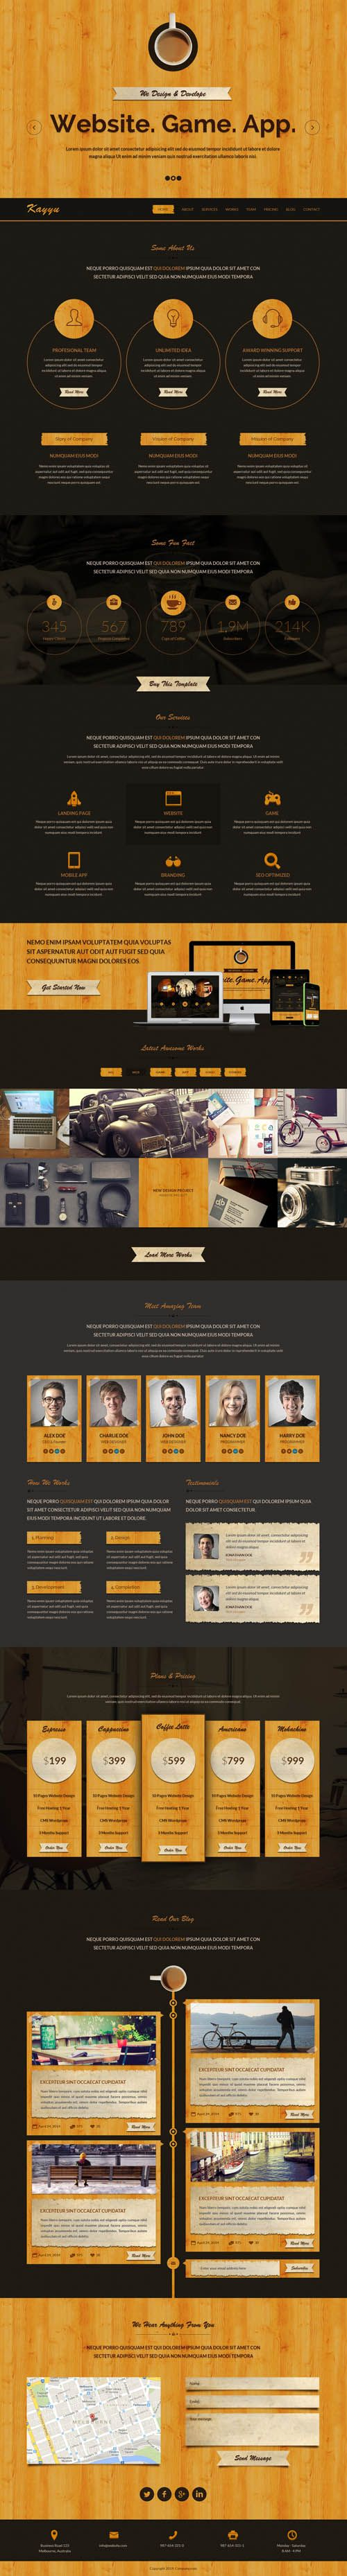 Kayyu One Page PSD Template #html5 #websitedesign #webdesign #html5templates